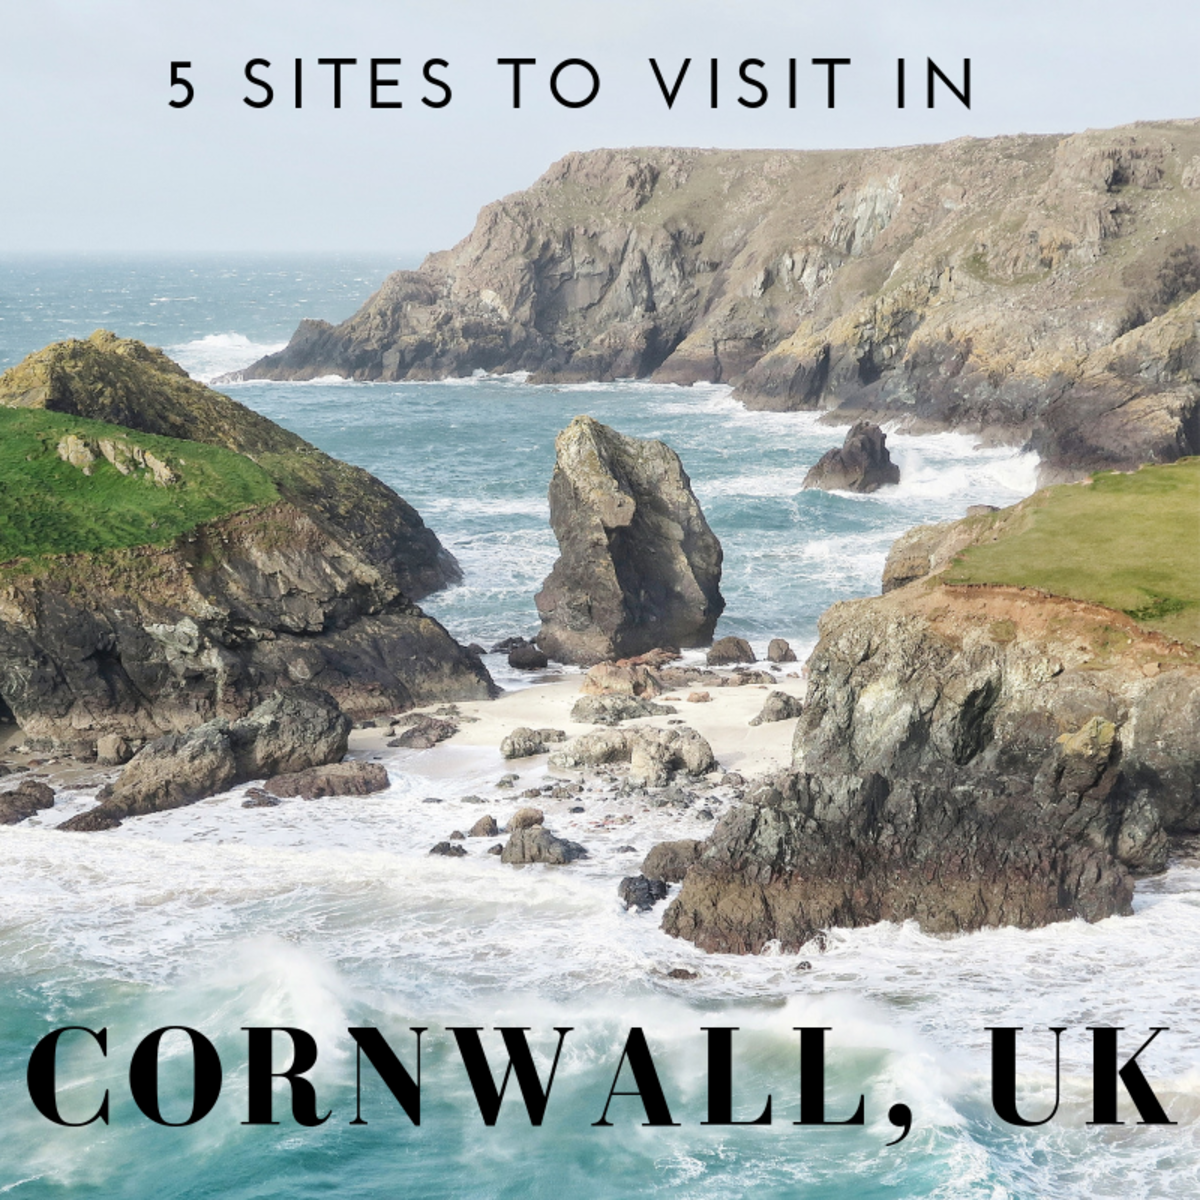 Cornwall is revered by travelers and locals alike for its stunning coast and storied history.